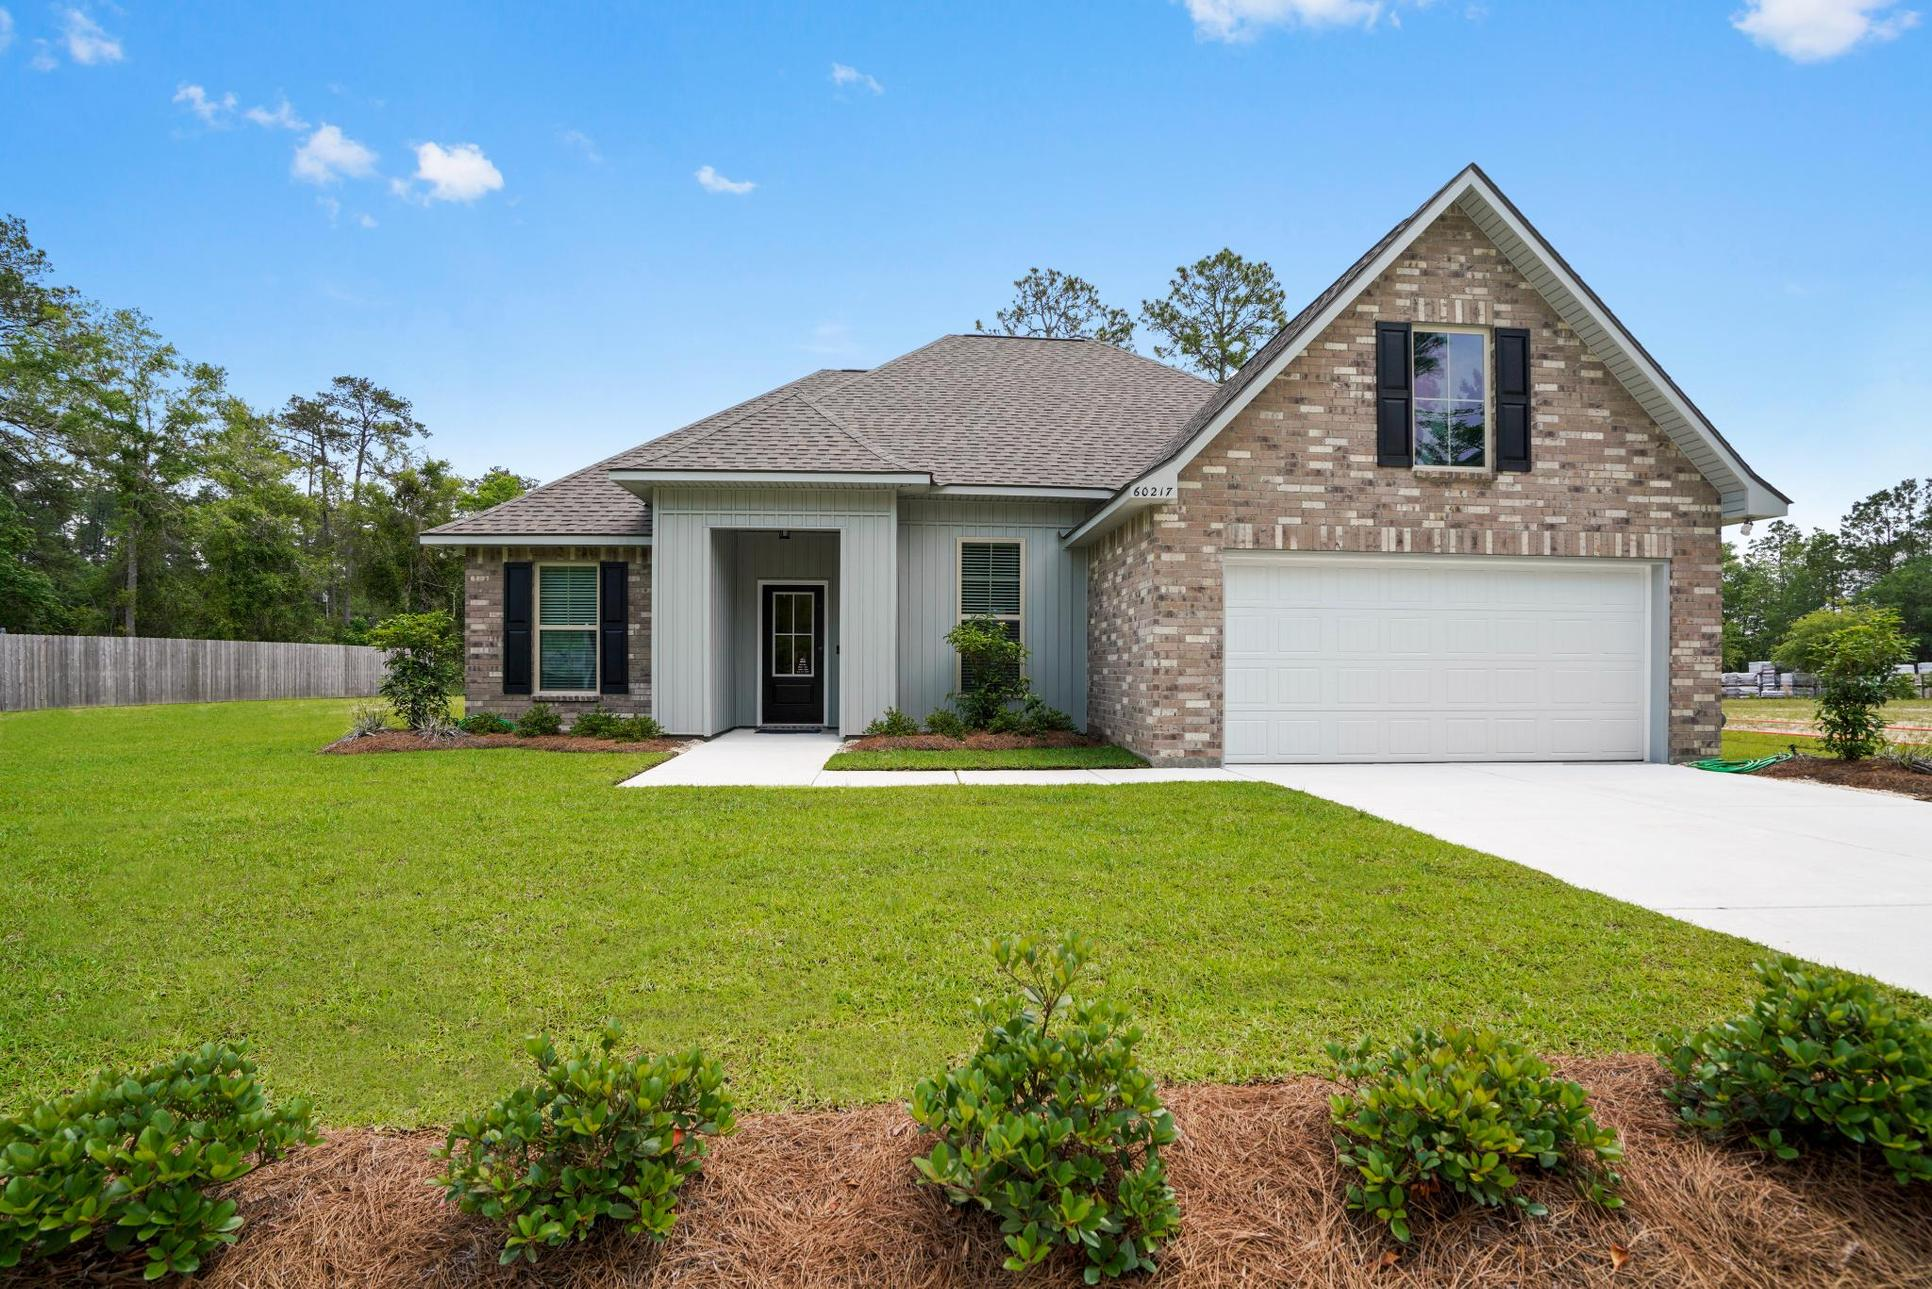 new homes in lacombe la by dsld homes:Rowland IV G Floor Plan - DSLD Homes - Oaklawn Trace - Slidell, LA